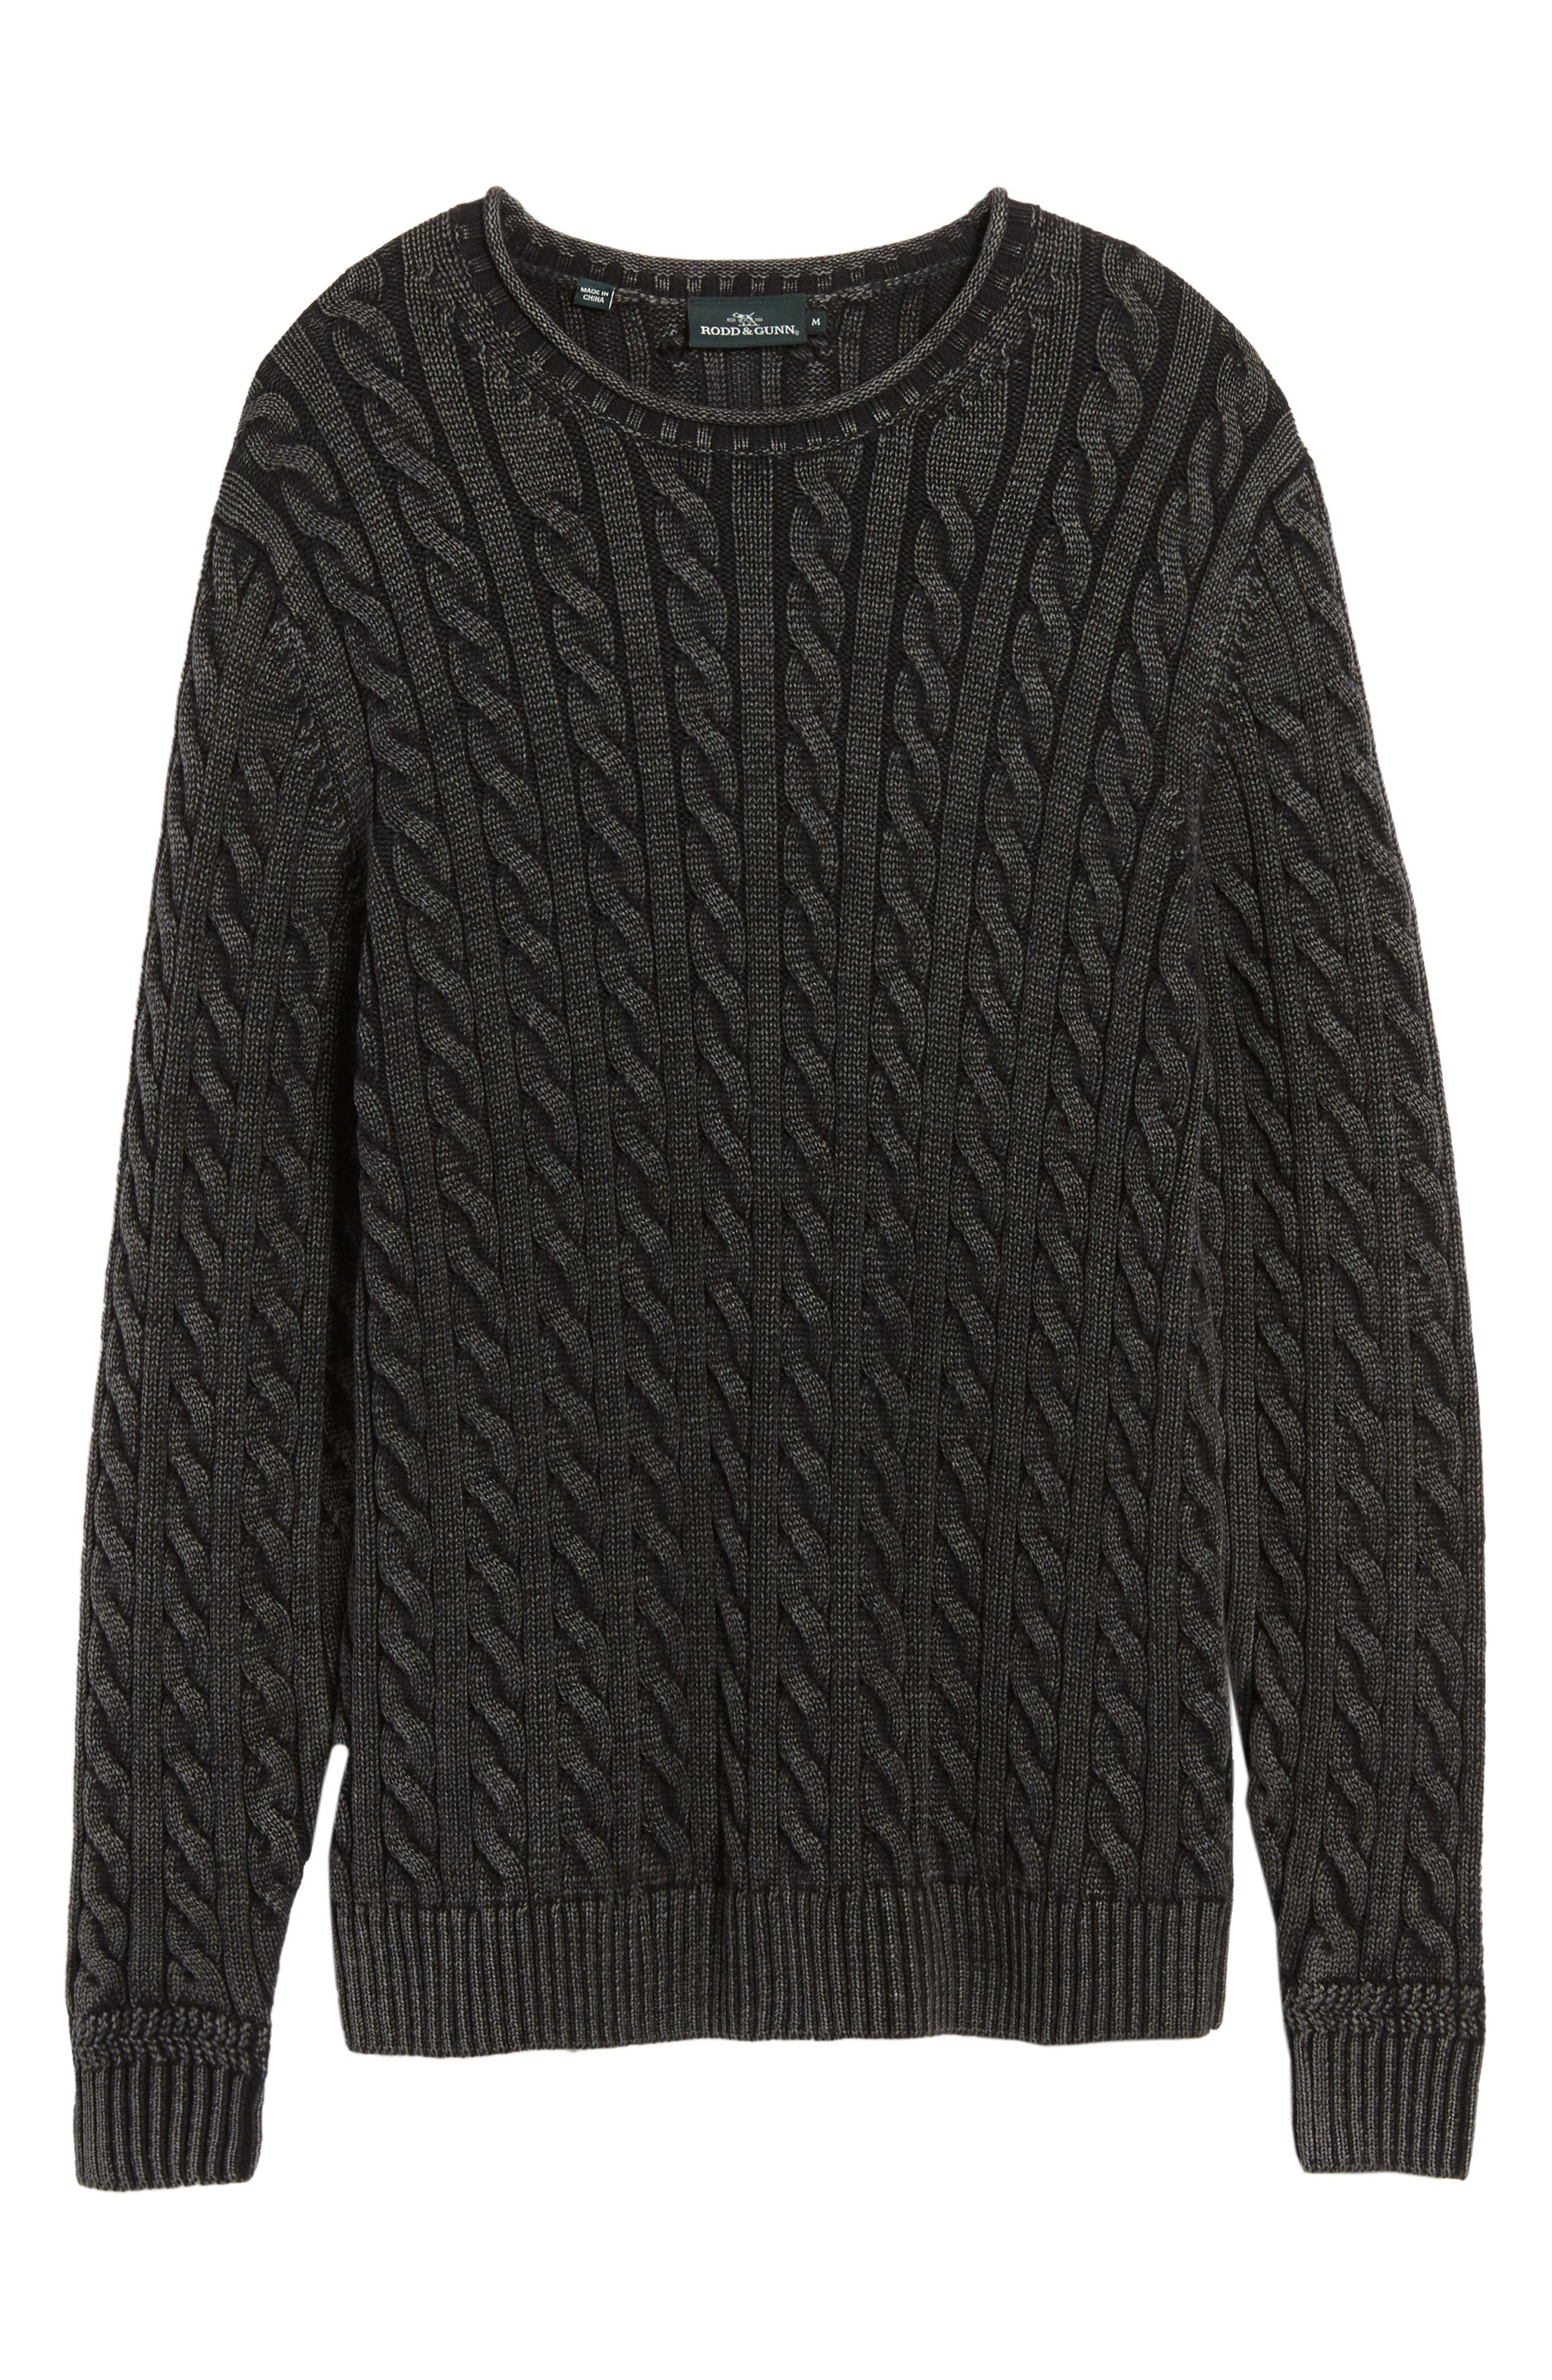 Landray Cable Knit Cotton Sweater,                             Alternate thumbnail 6, color,                             021